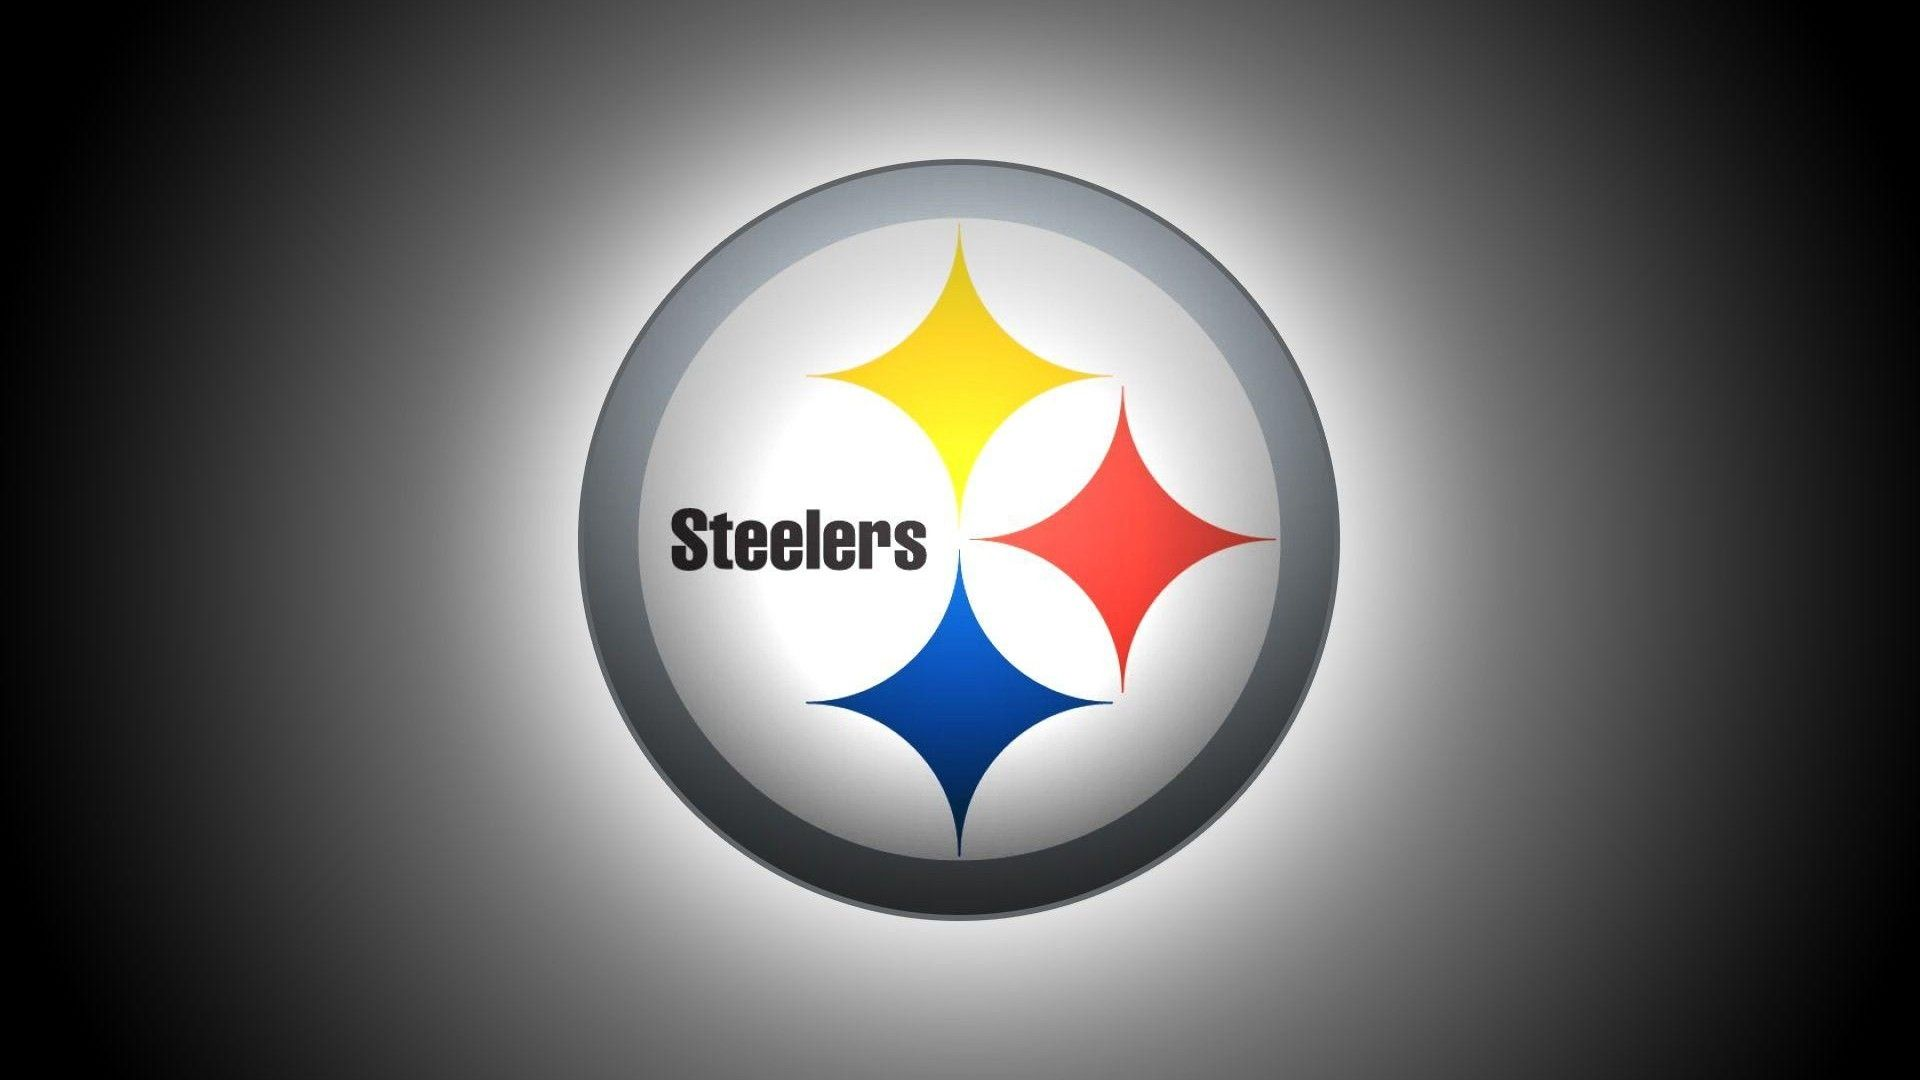 Steelers Logo Pictures